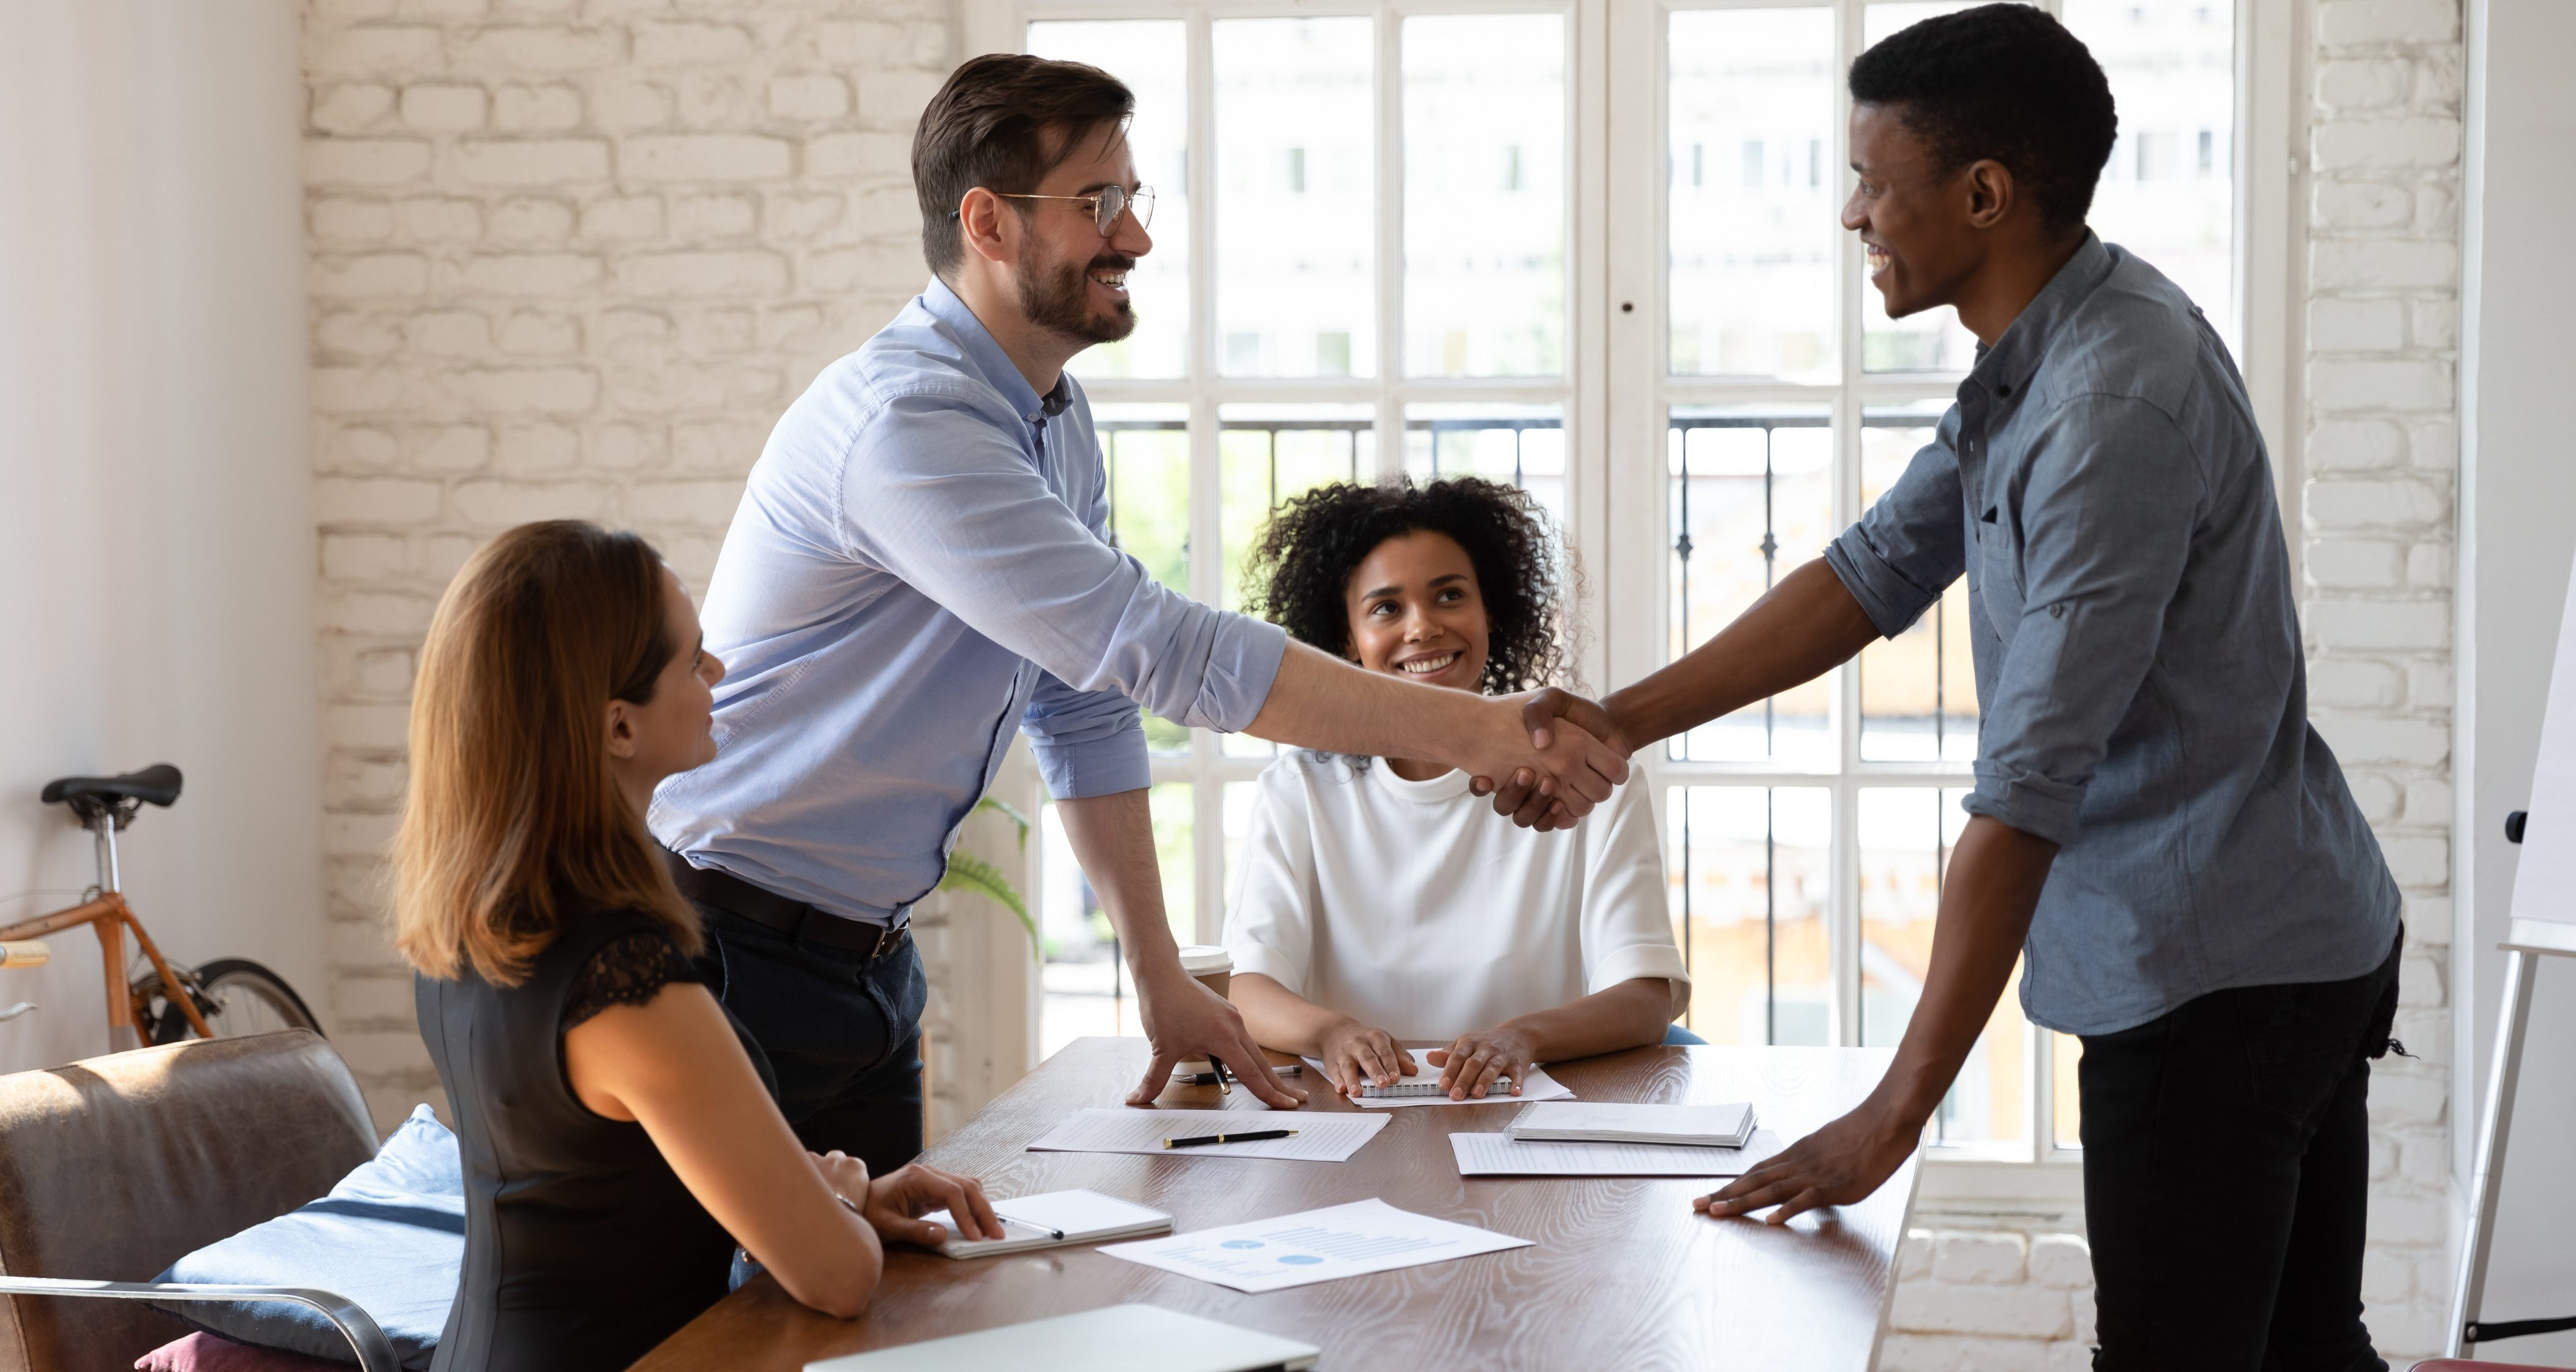 Smiling multiethnic male employees shake hands greet get acquainted at office meeting, happy diverse multiracial coworkers colleagues handshake congratulate with promotion close deal at briefing